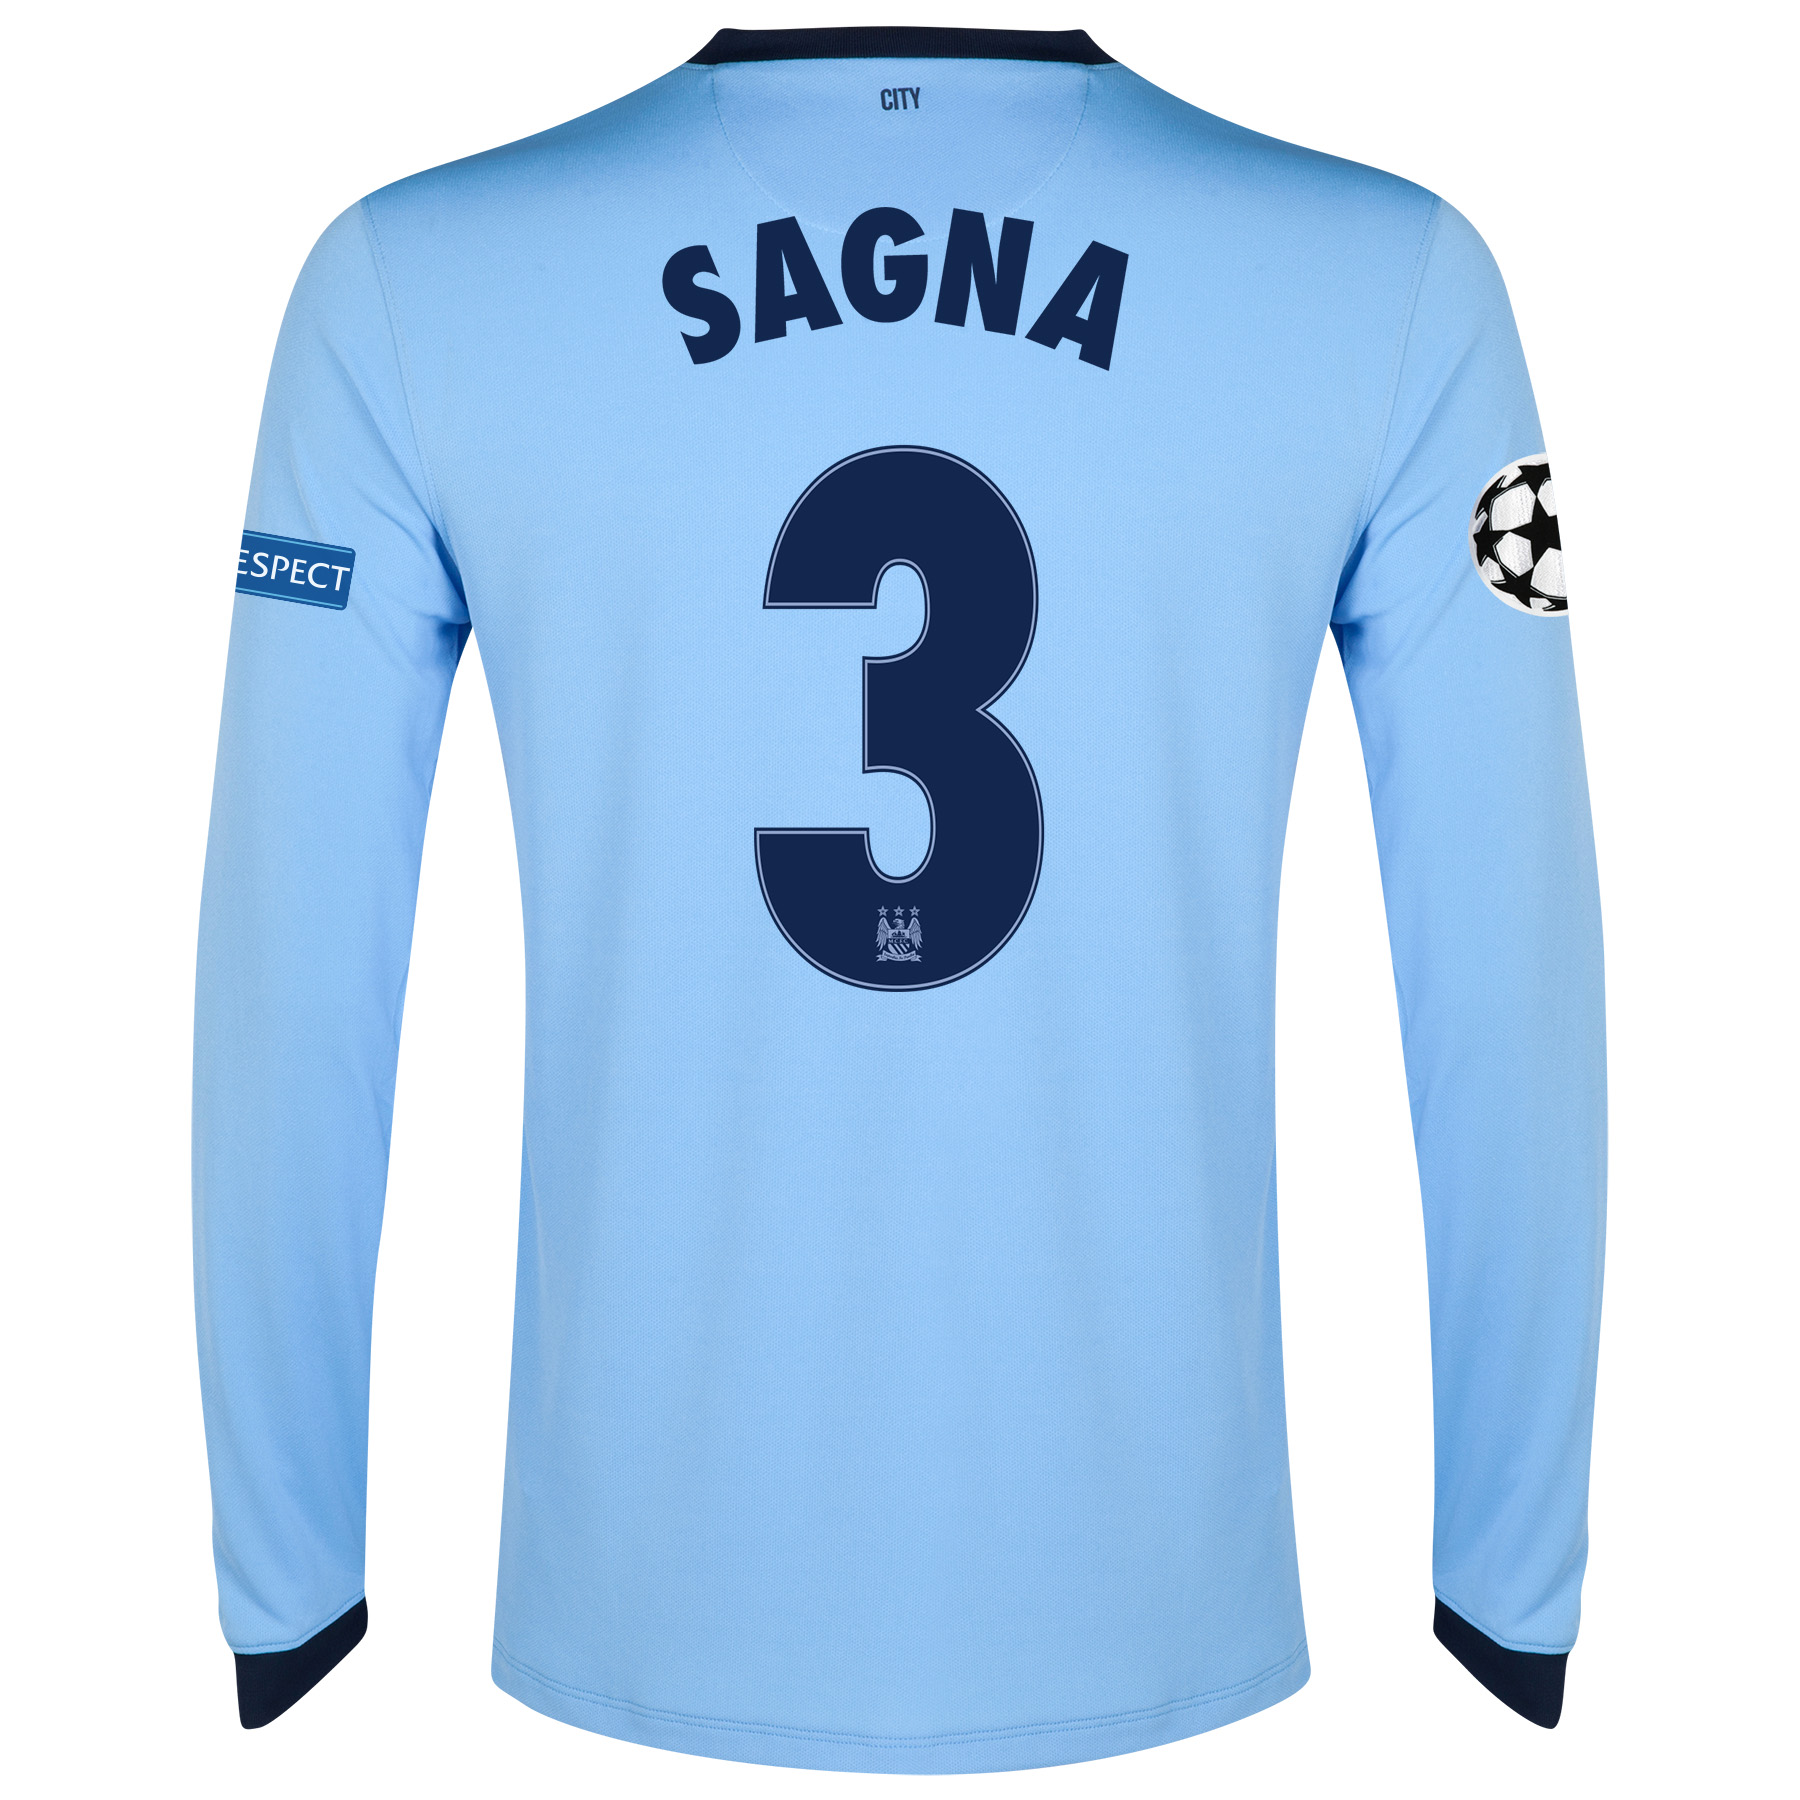 Manchester City UEFA Champions League Home Shirt 2014/15 - Long Sleeve Sky Blue with Sagna 3 printing